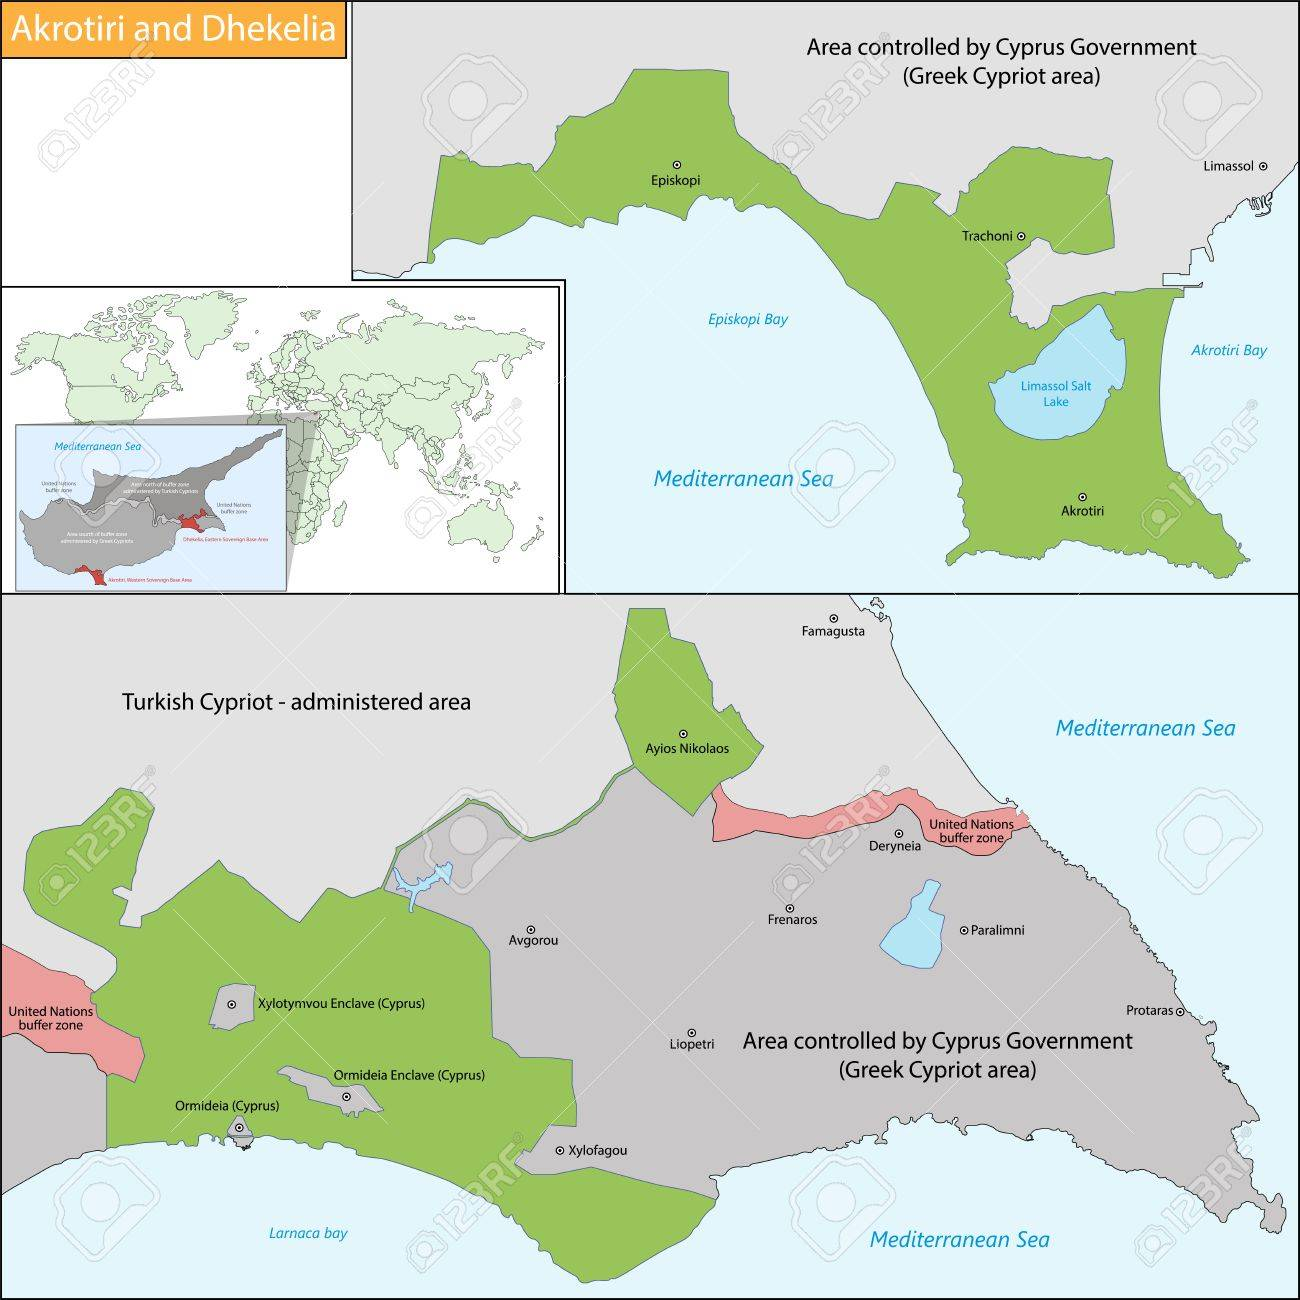 Sovereign Base Areas Of Akrotiri And Dhekelia Is A British Overseas